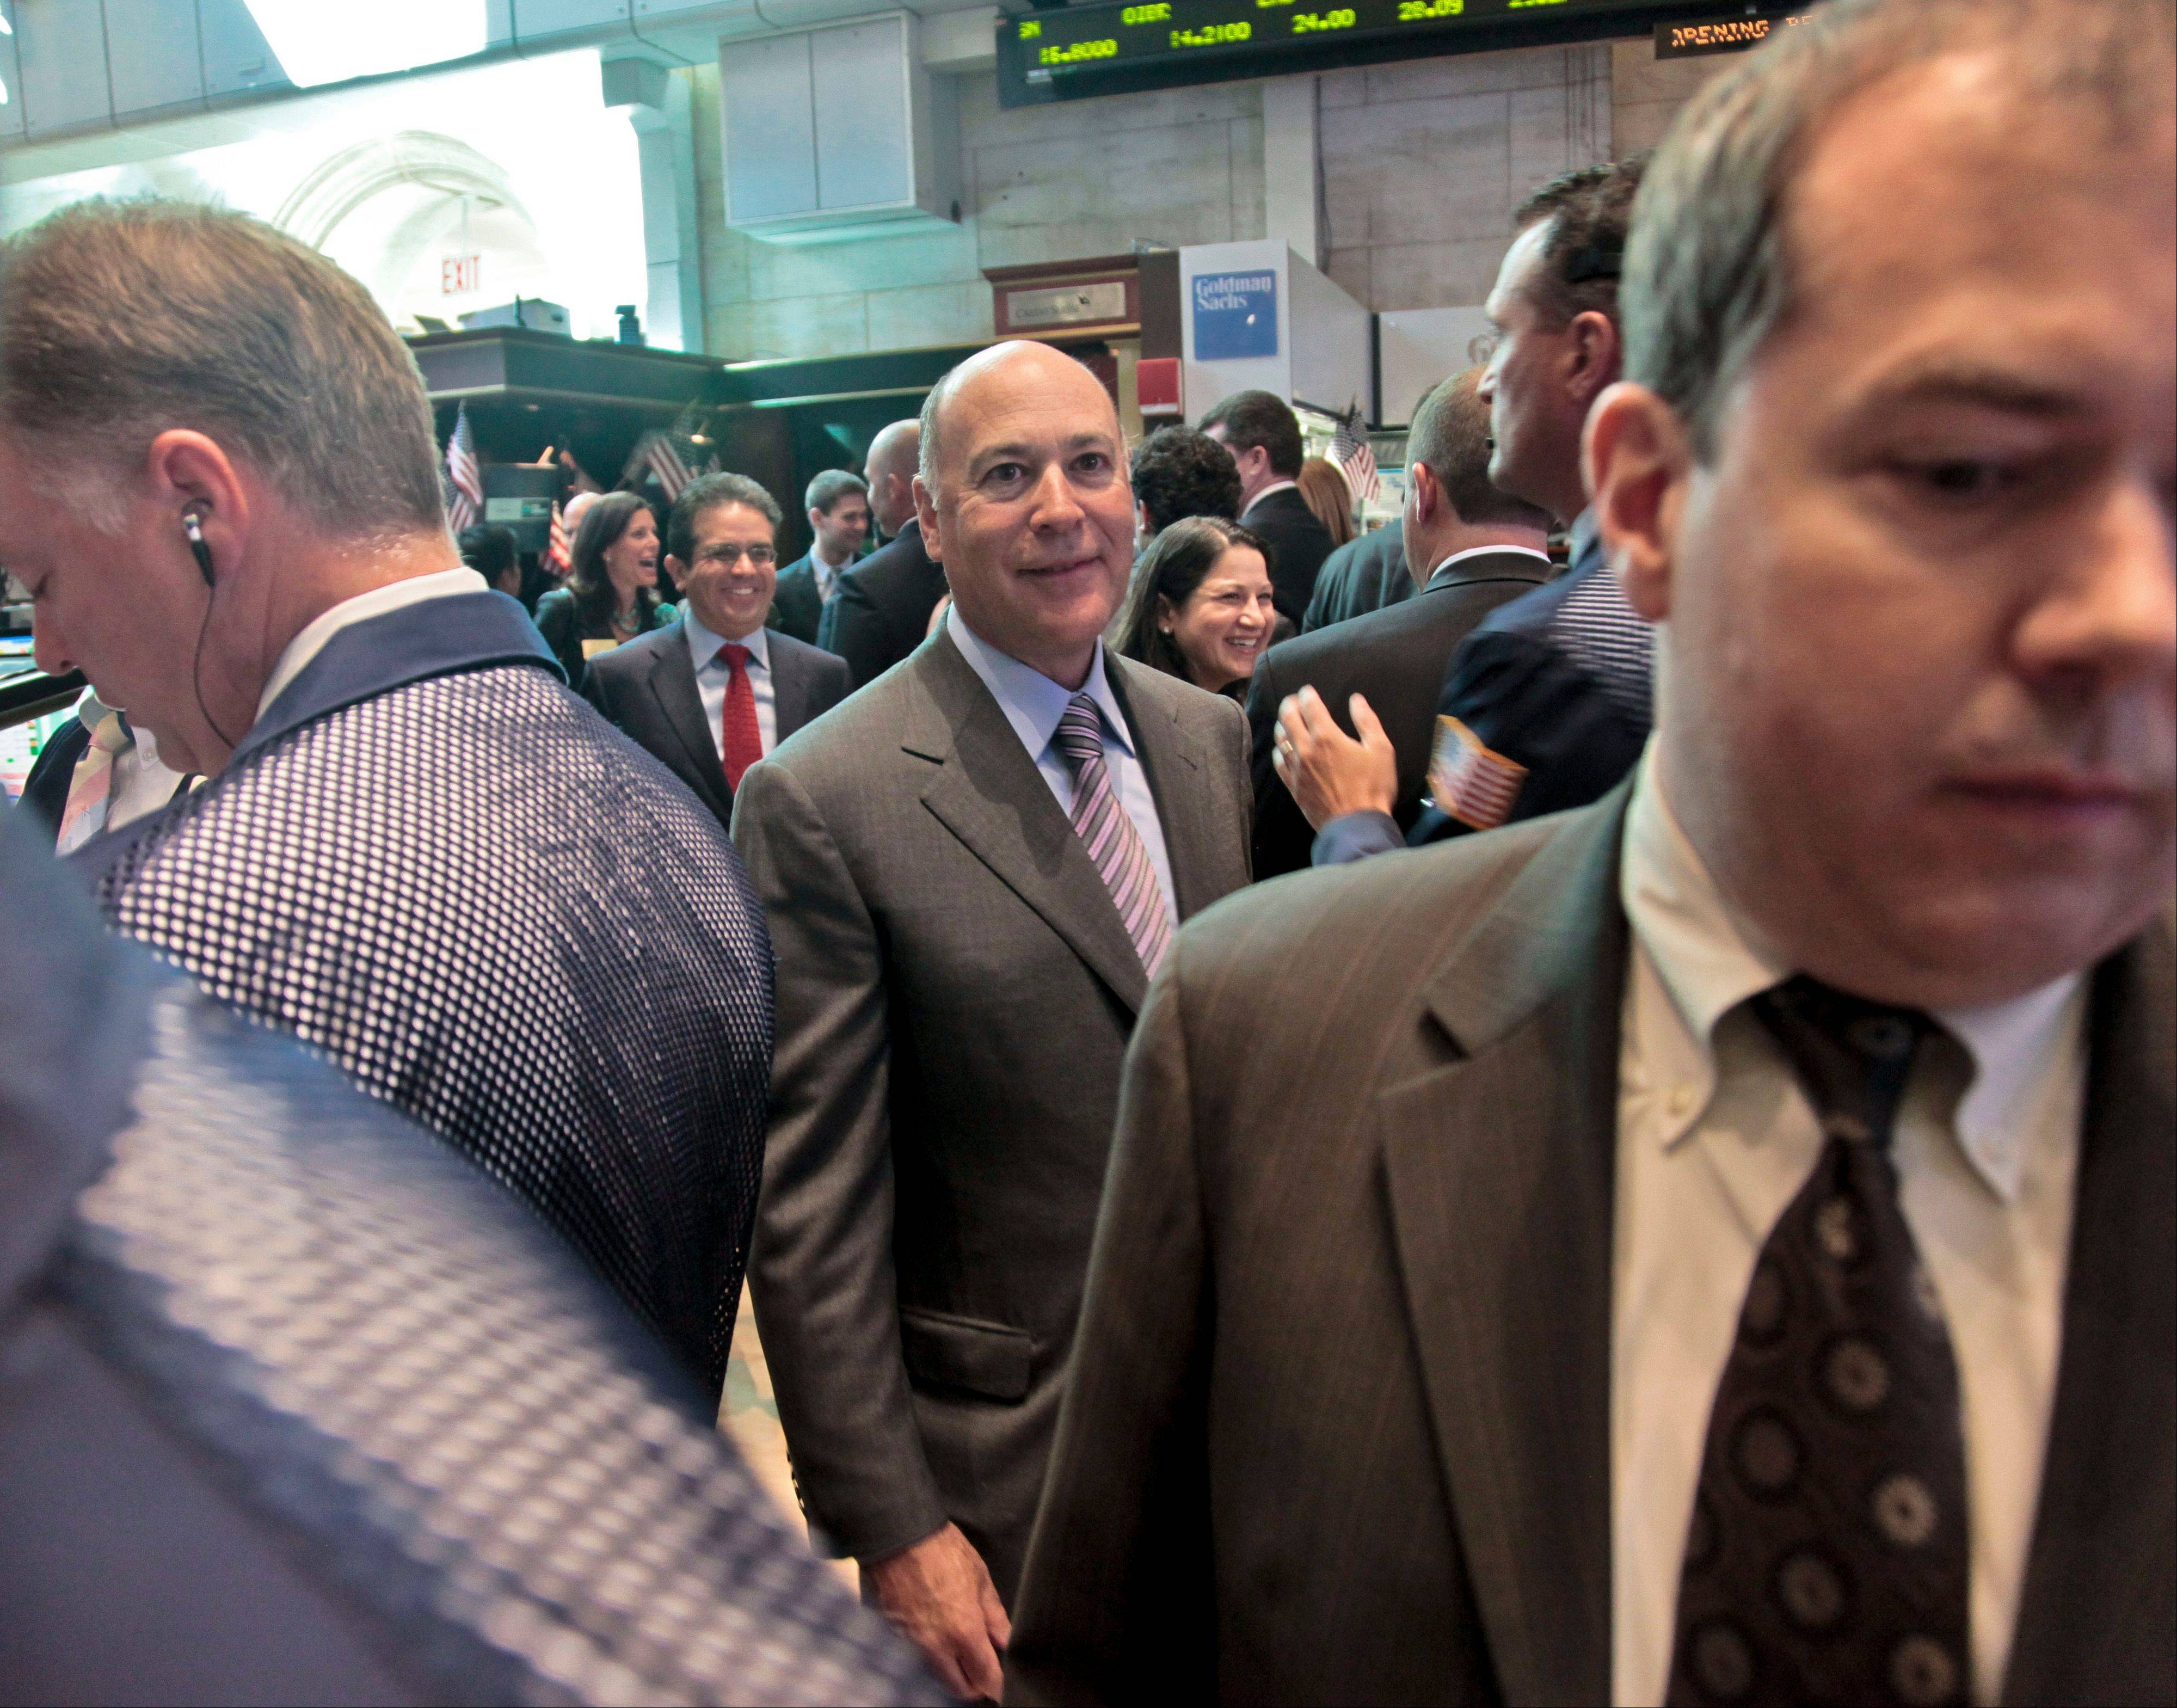 Robert S. Kapito, center, president of the global investment management company BlackRock, leaves after ringing the New York Stock Exchange opening bell to celebrate the 10th anniversary of the creation of the first fixed income exchange traded funds, including iShares, Tuesday.